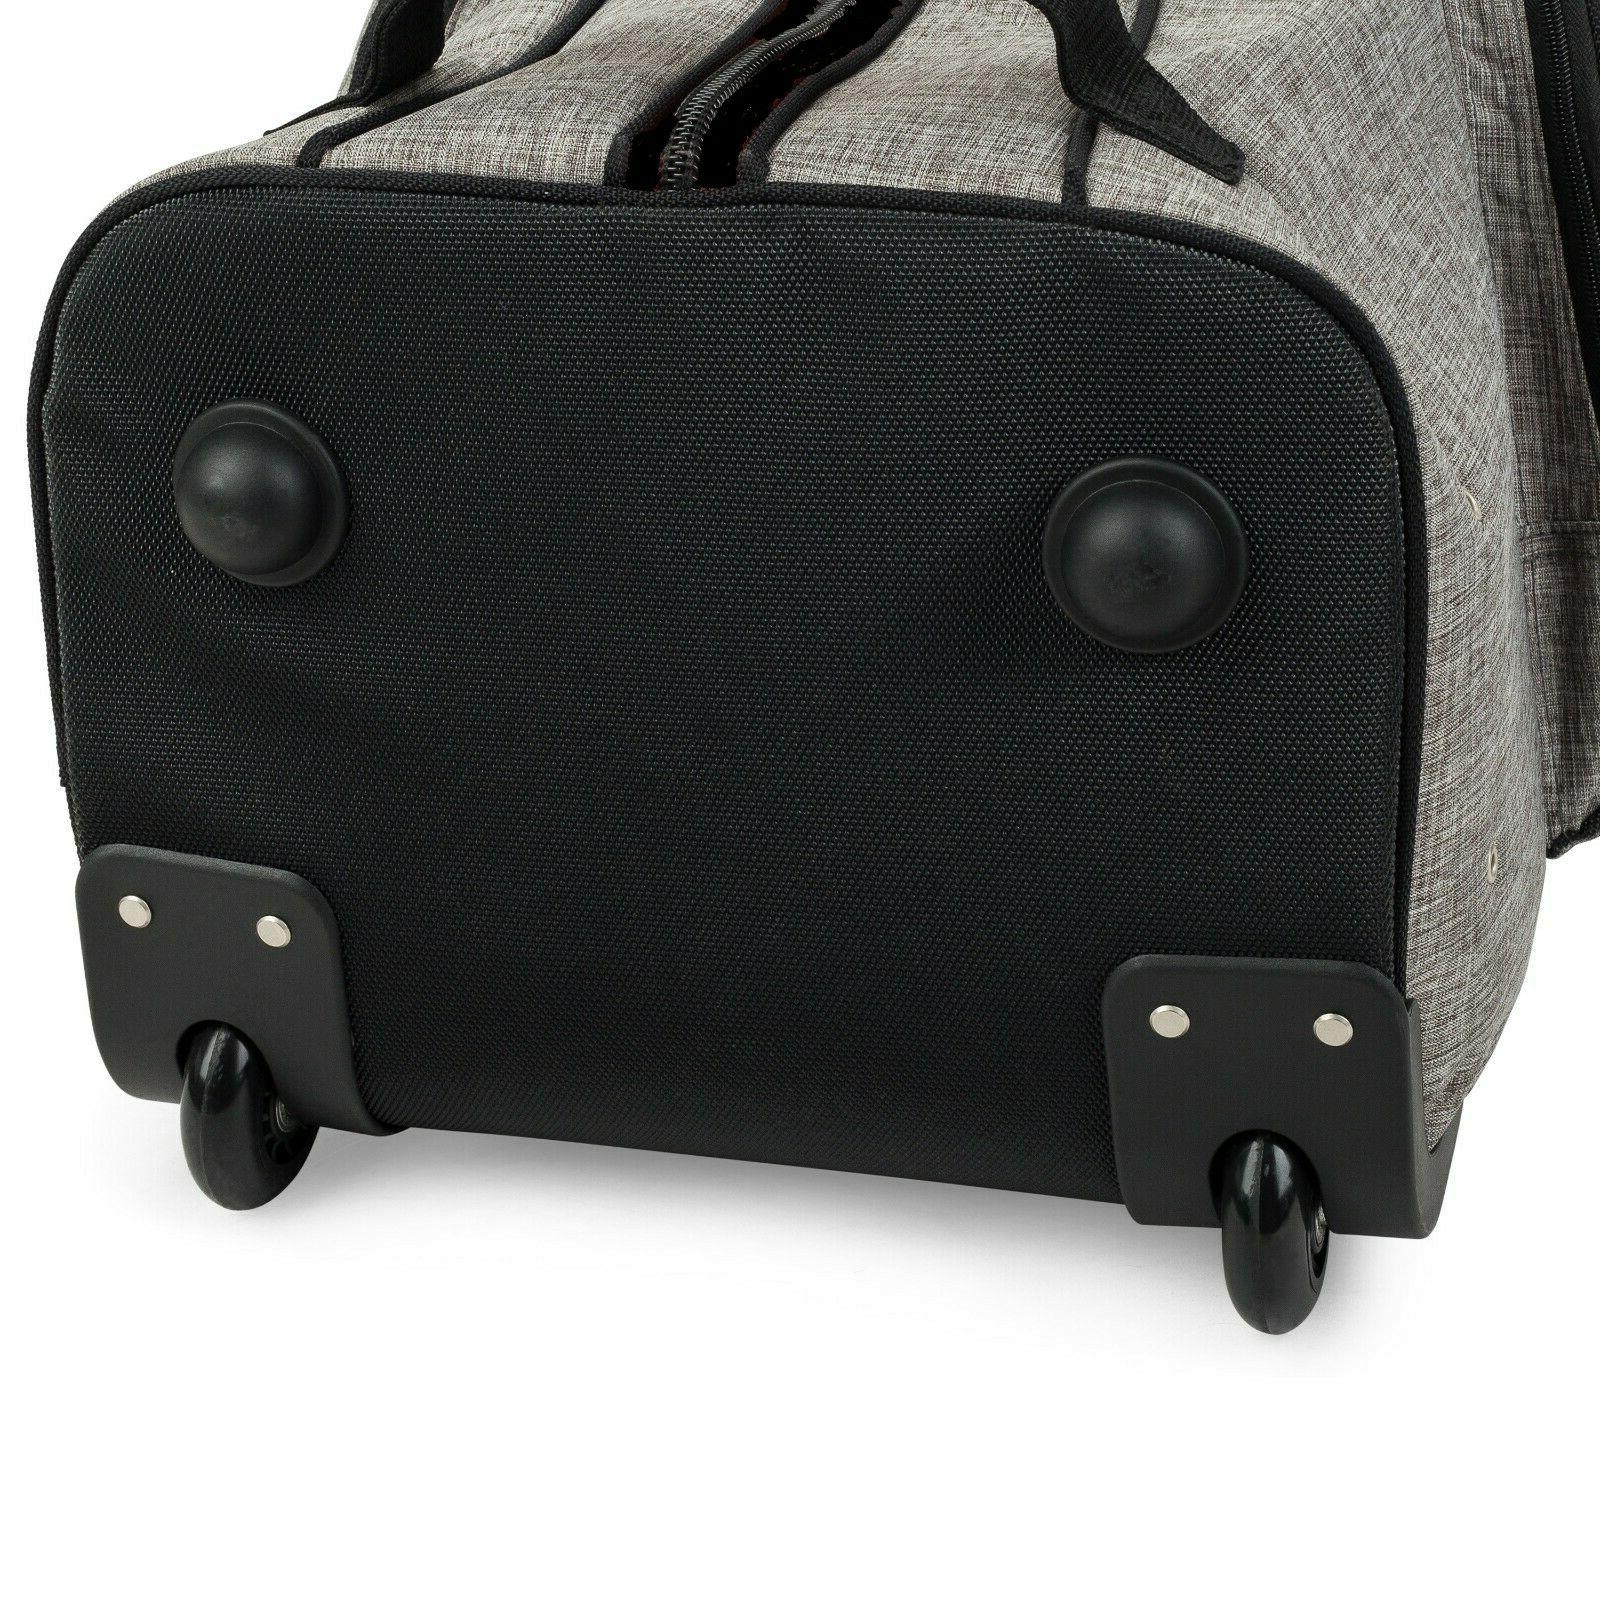 Founders Golf Travel Bag Luggage ABS Hard